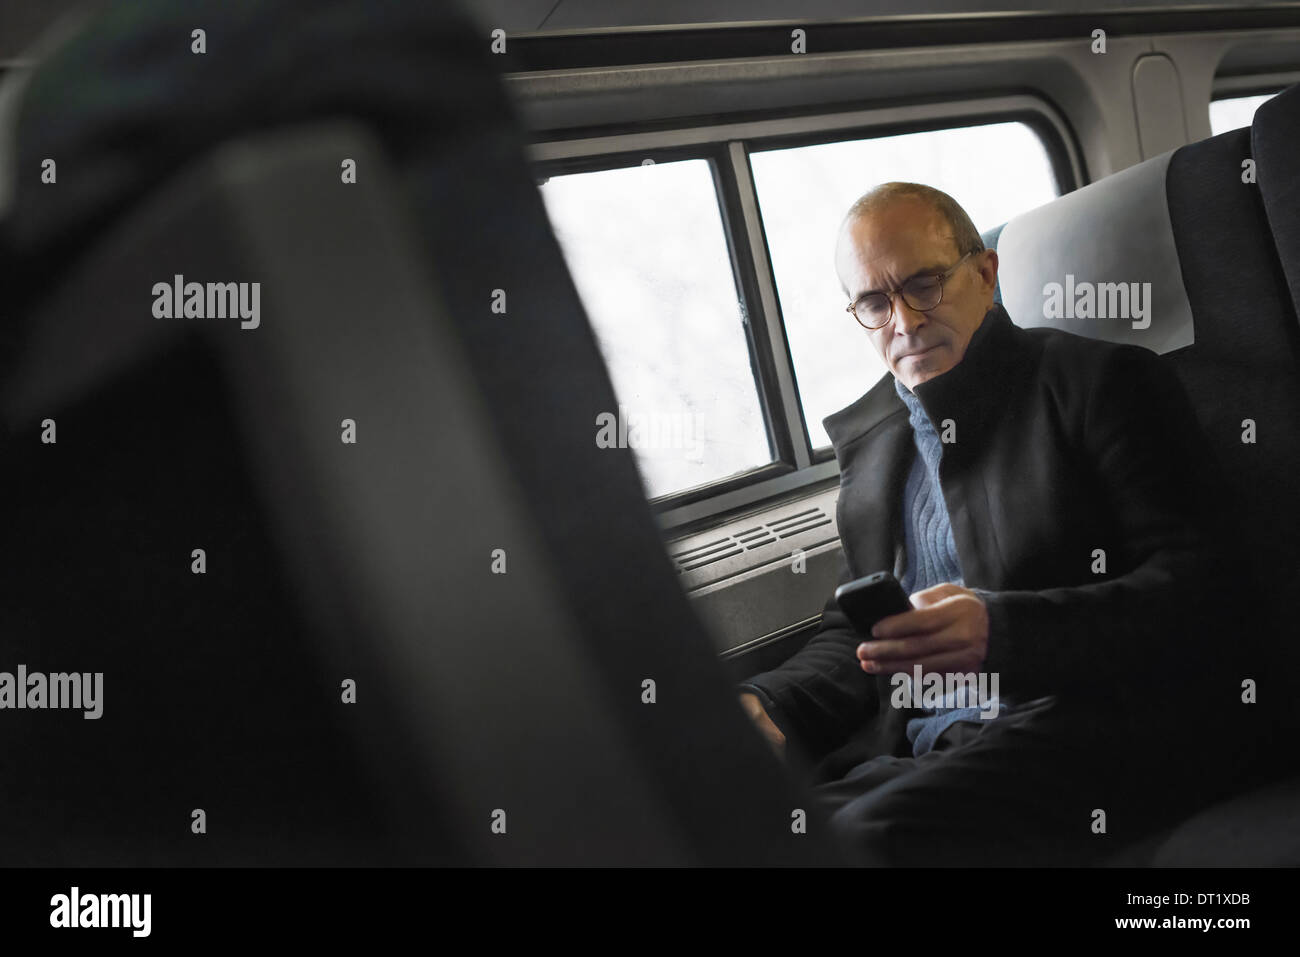 A mature man sitting by a window in a train carriage using his mobile phone keeping in touch on the move - Stock Image